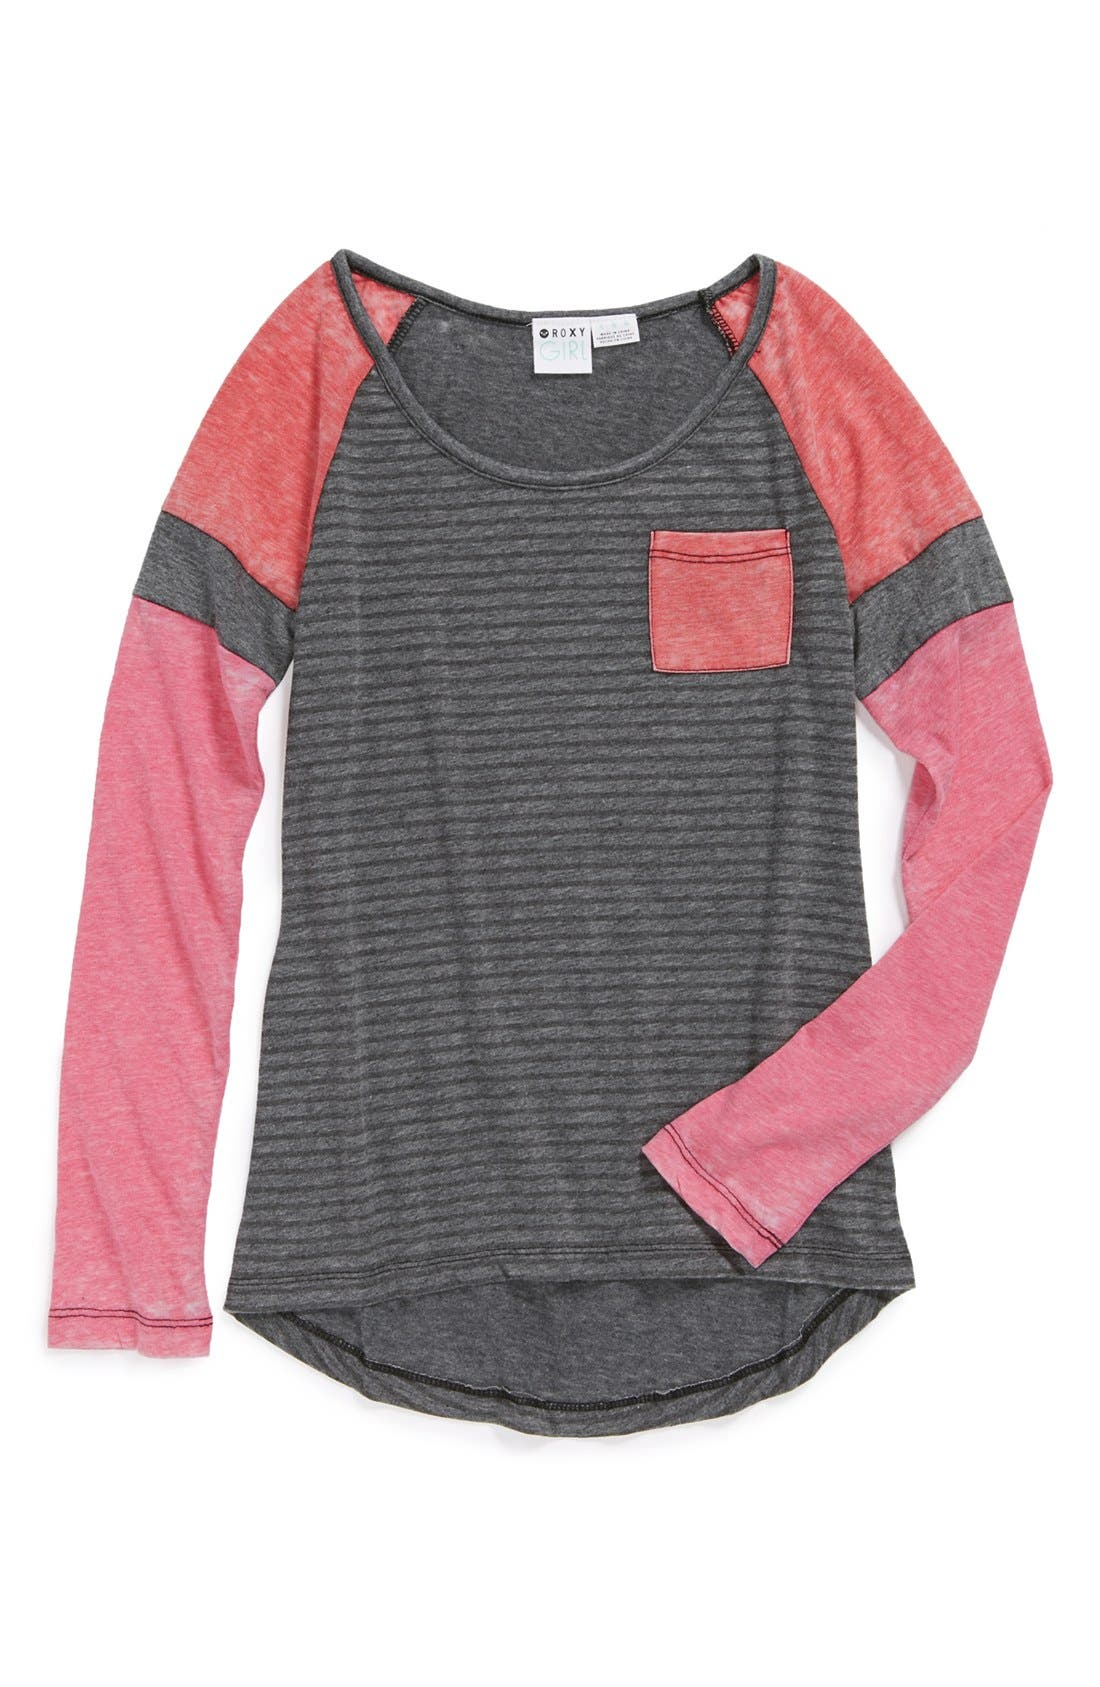 Alternate Image 1 Selected - Roxy 'Endless Winter' Colorblock Tee (Big Girls)